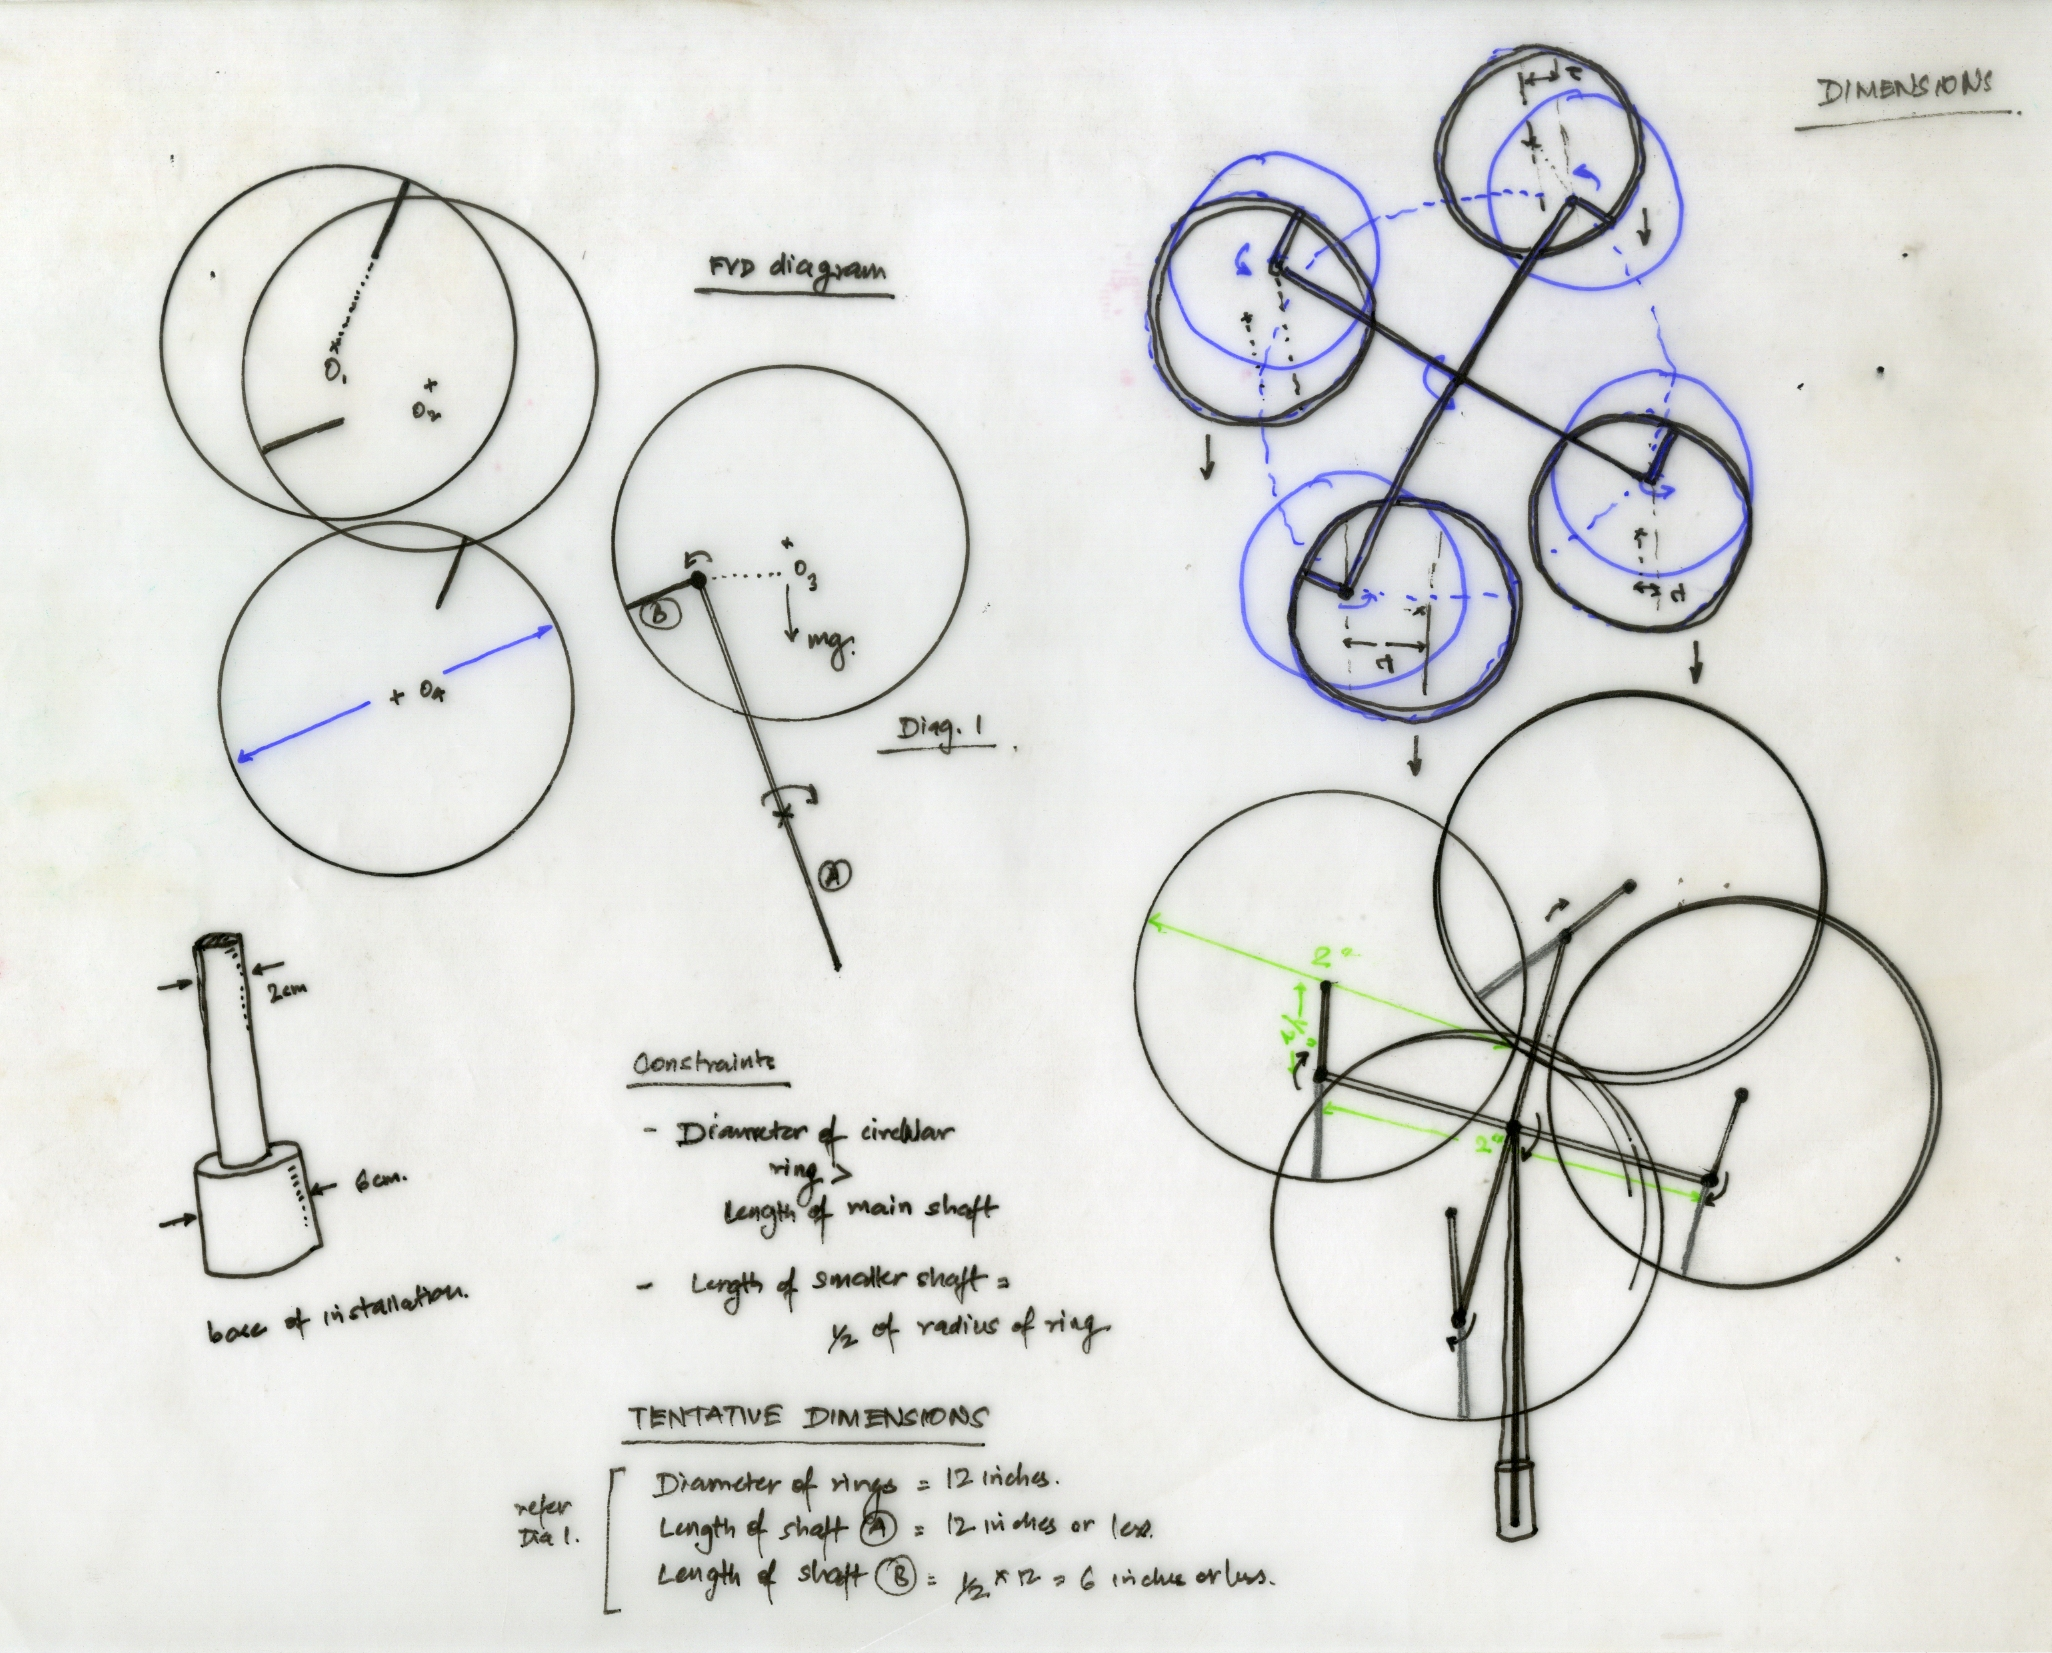 Free body diagram and linkage dimensions